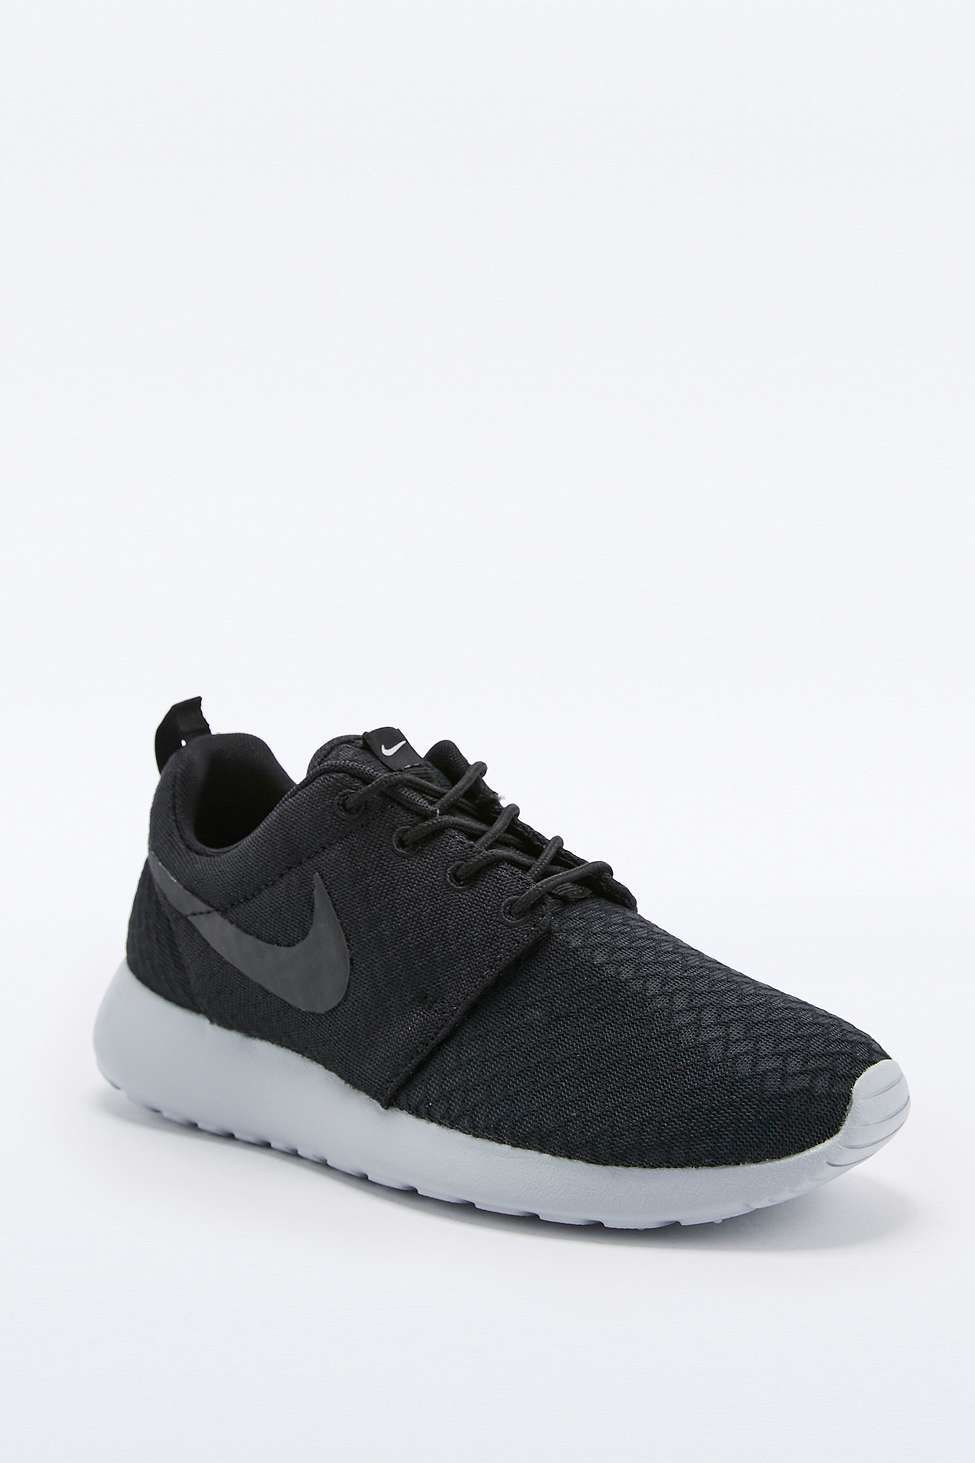 3796b6f1c9e3 Shop Nike Roshe Run Black and Grey Trainers at Urban Outfitters today. We  carry all the latest styles